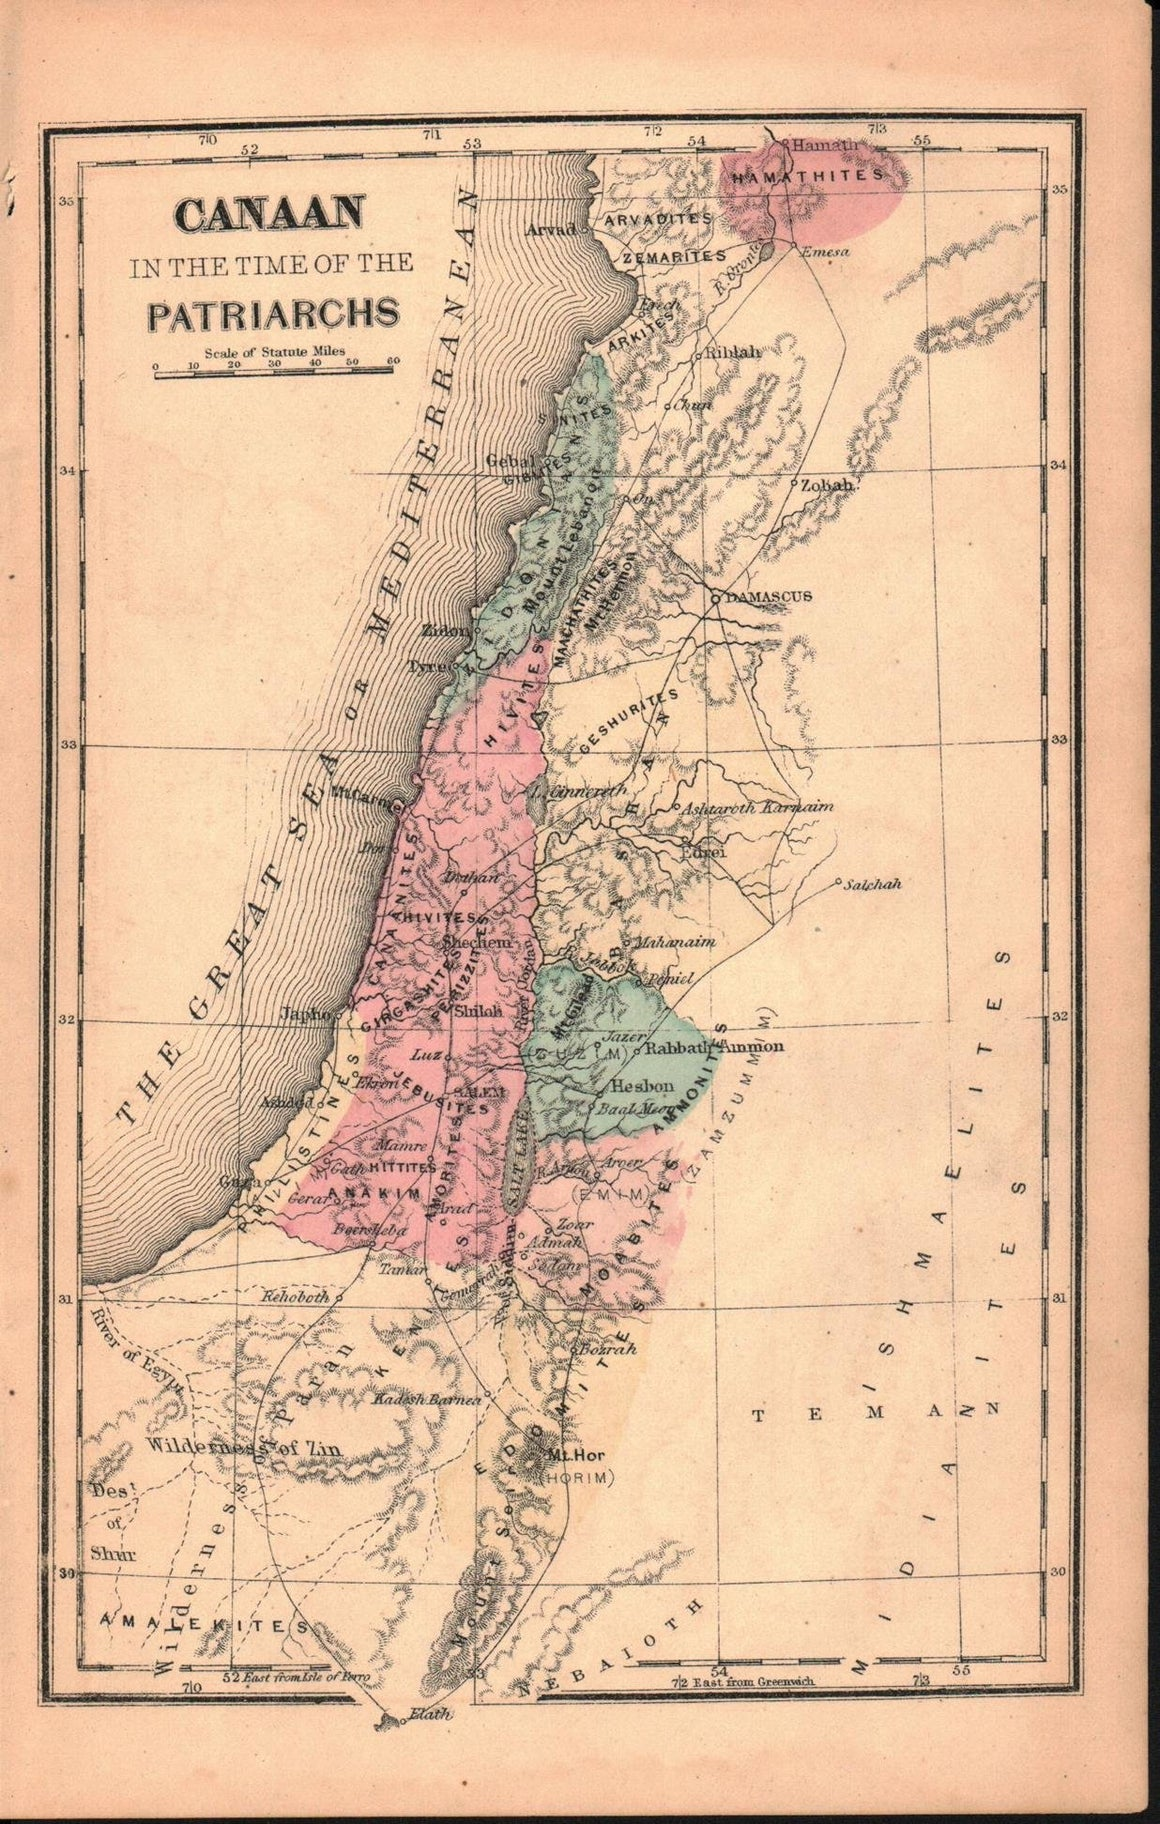 1870 Canaan in time of the Patriarchs - E Wells